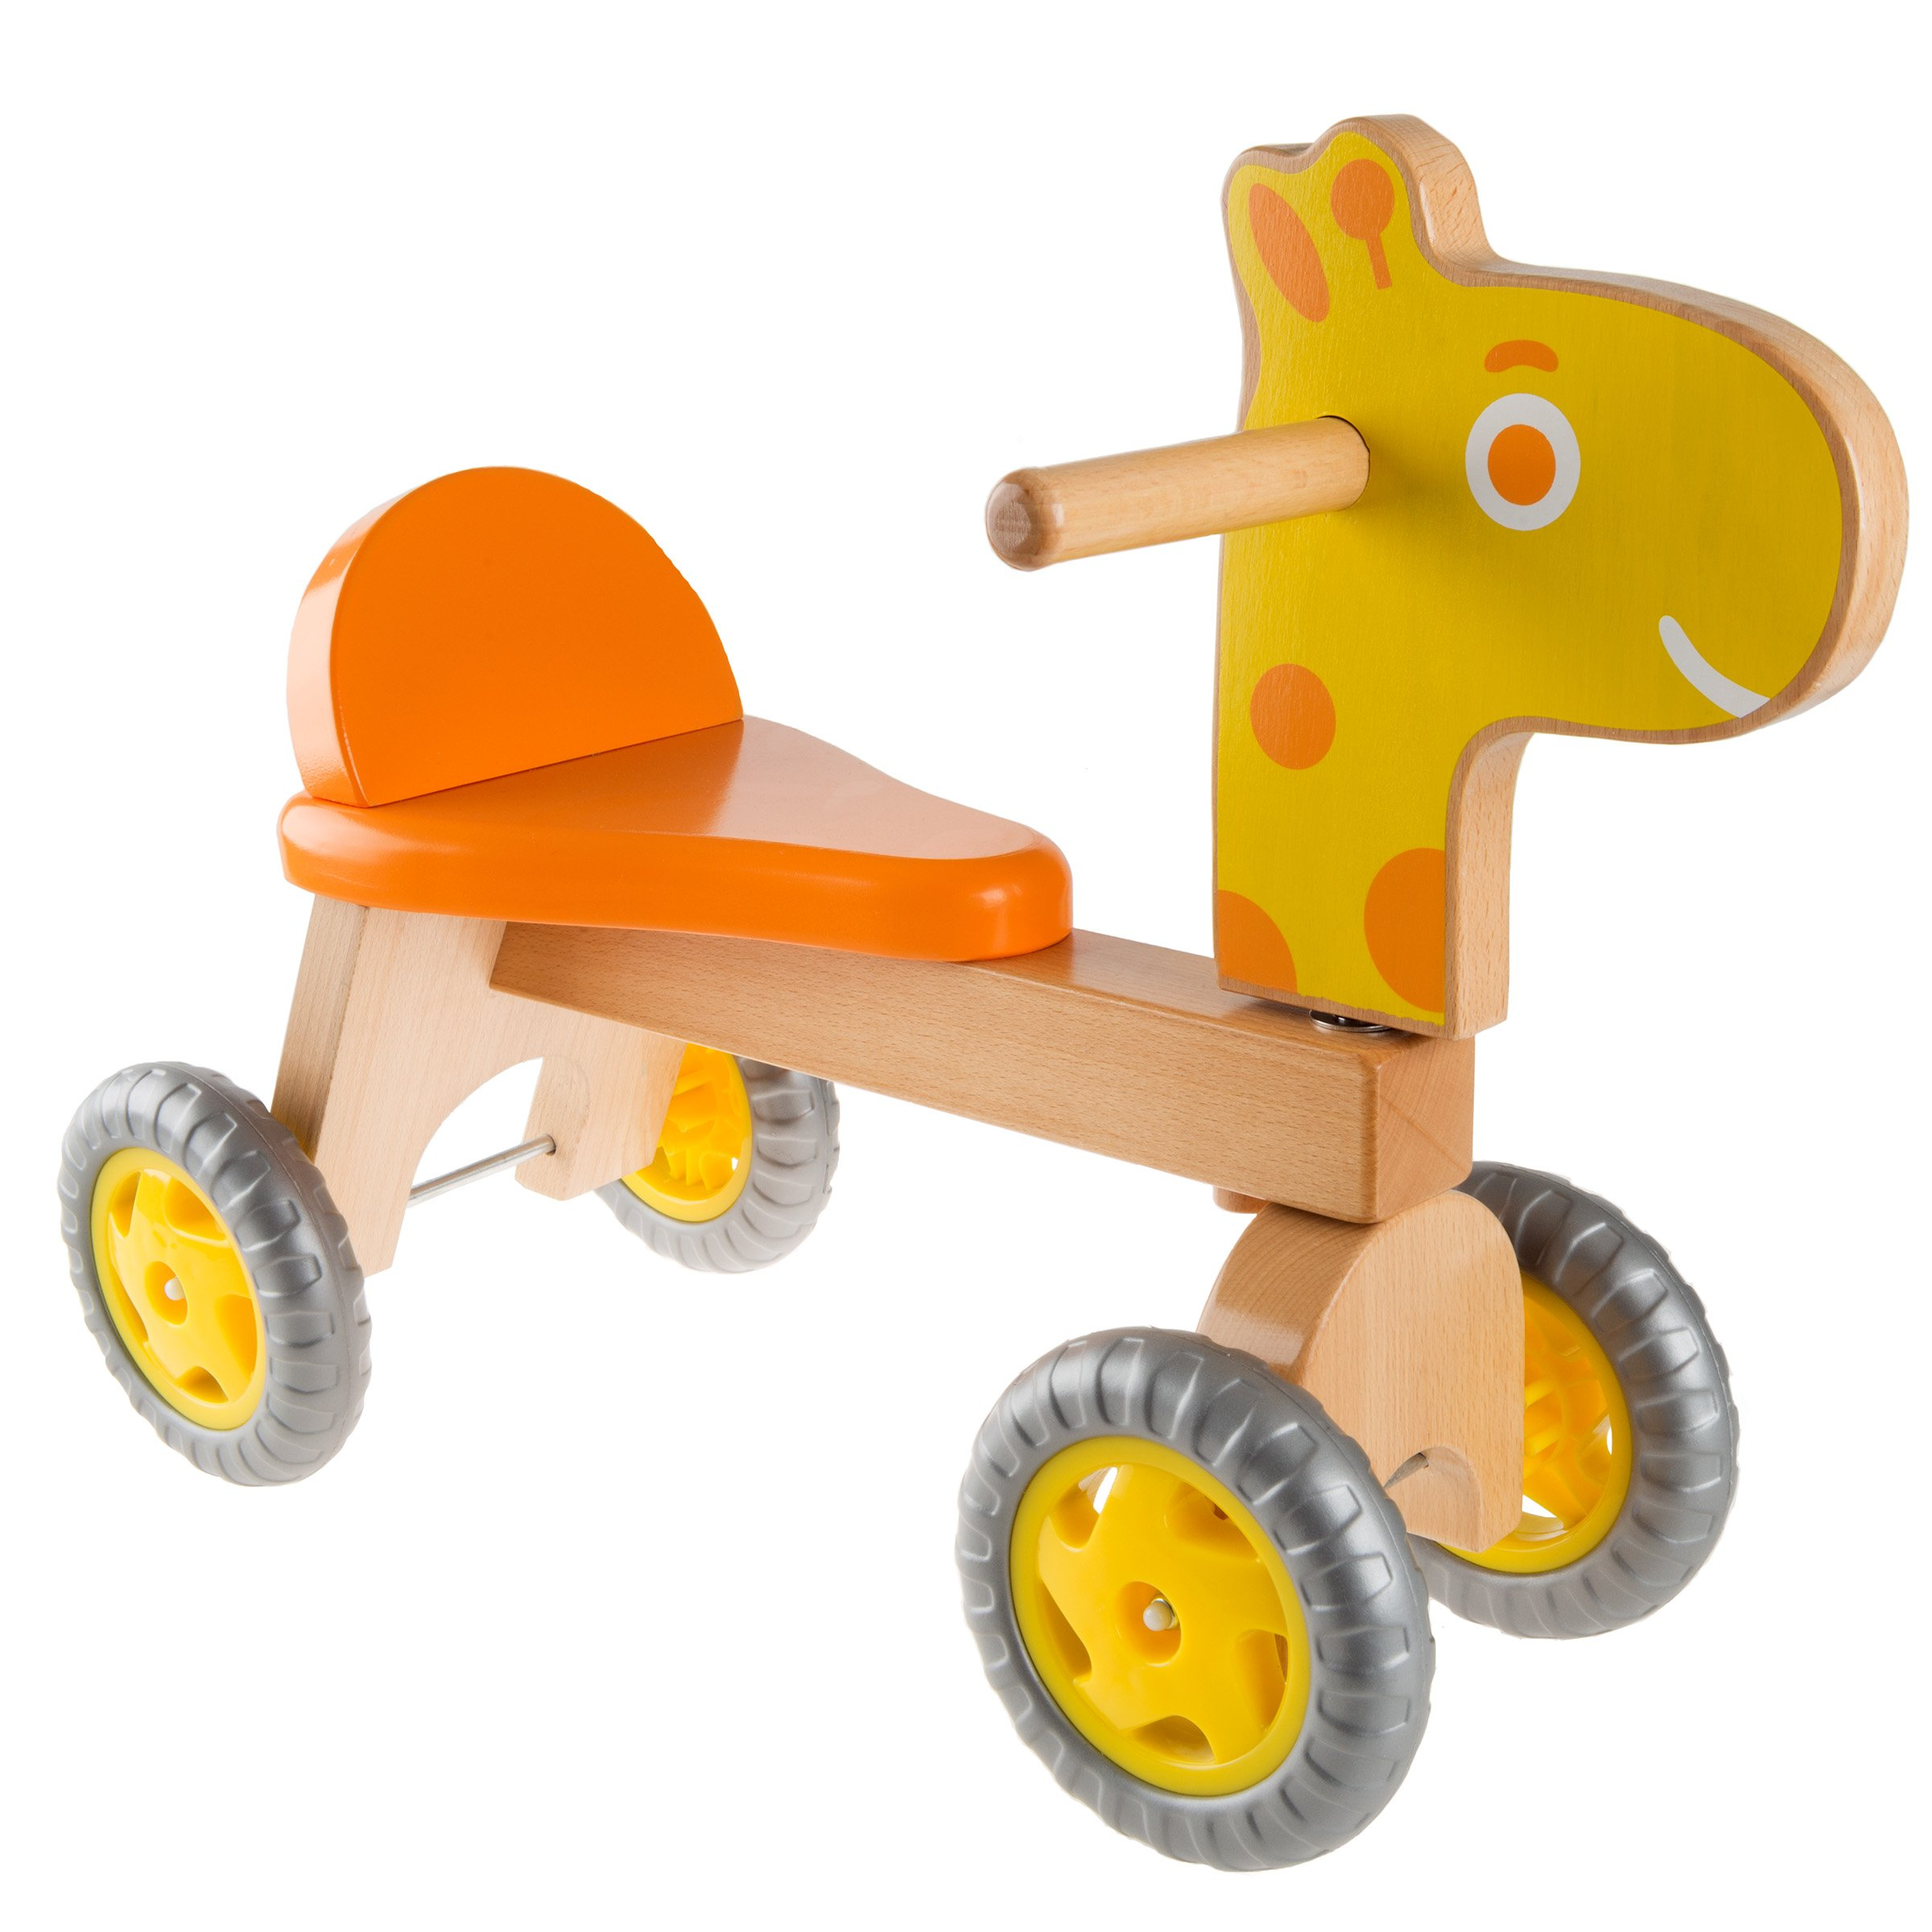 Deluxe Wooden Giraffe Walk and Ride Balance Bike Ride On - Great for Toddlers! by TMG